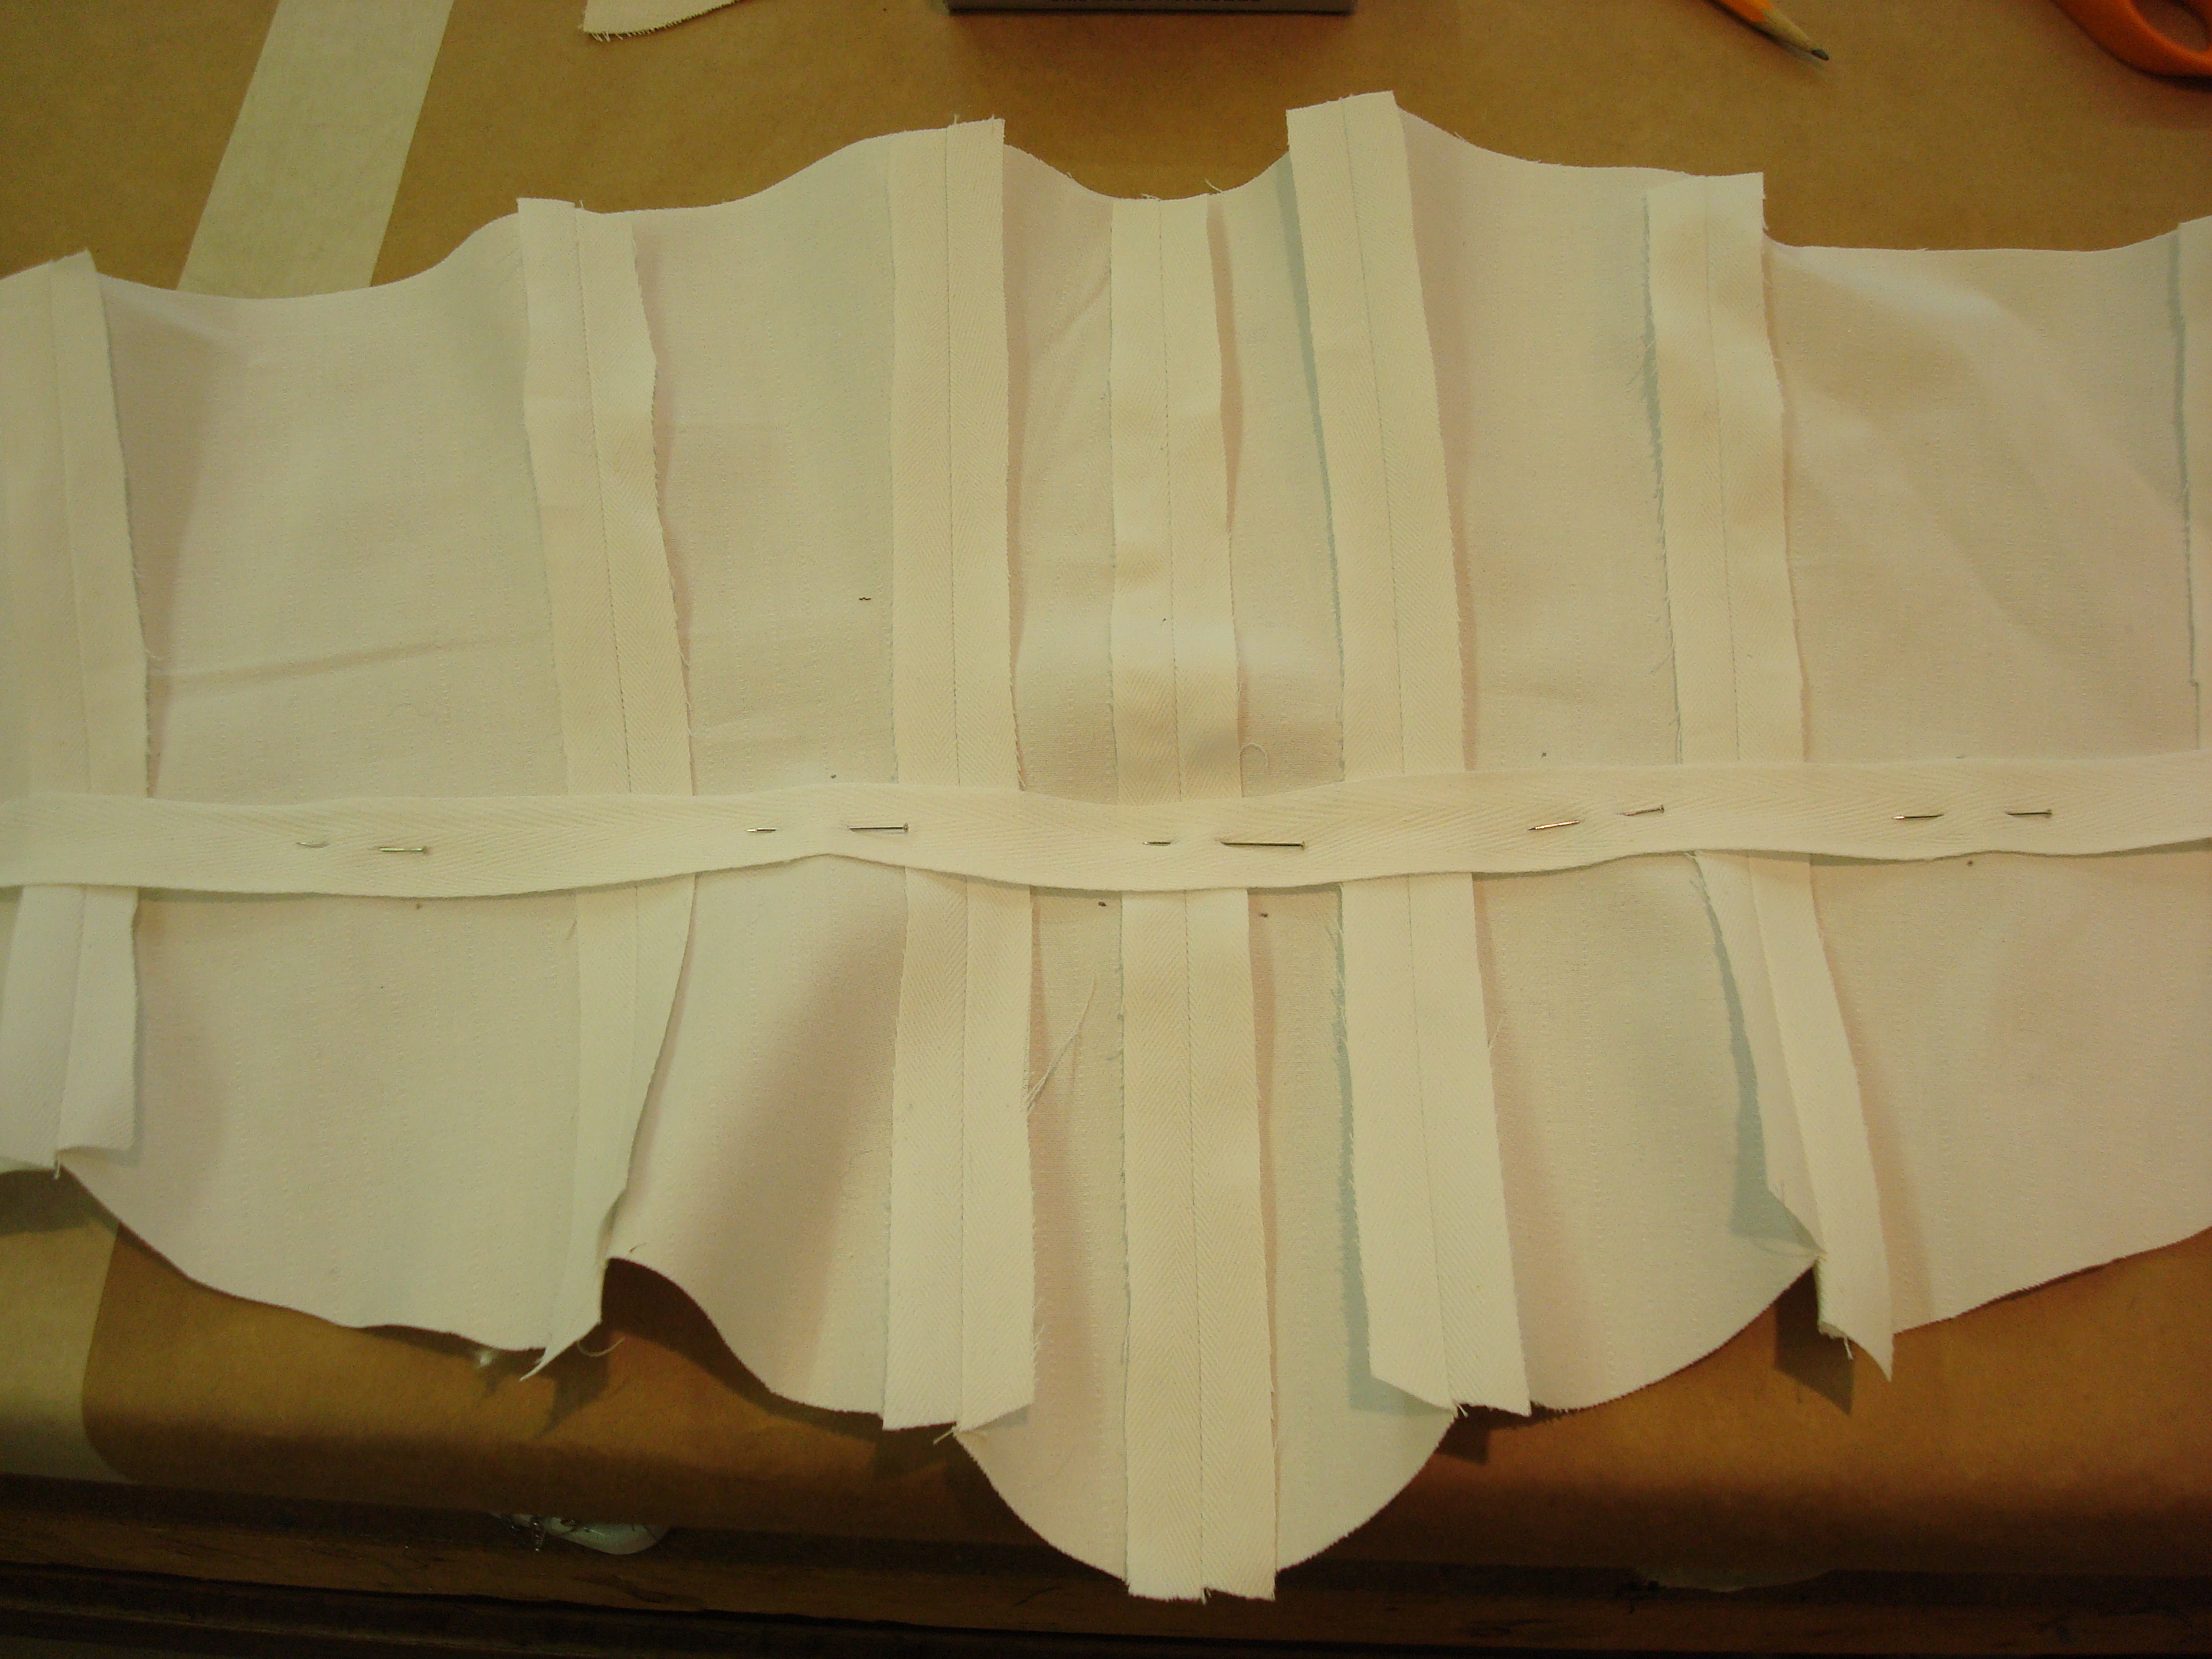 double stitched seam instructions